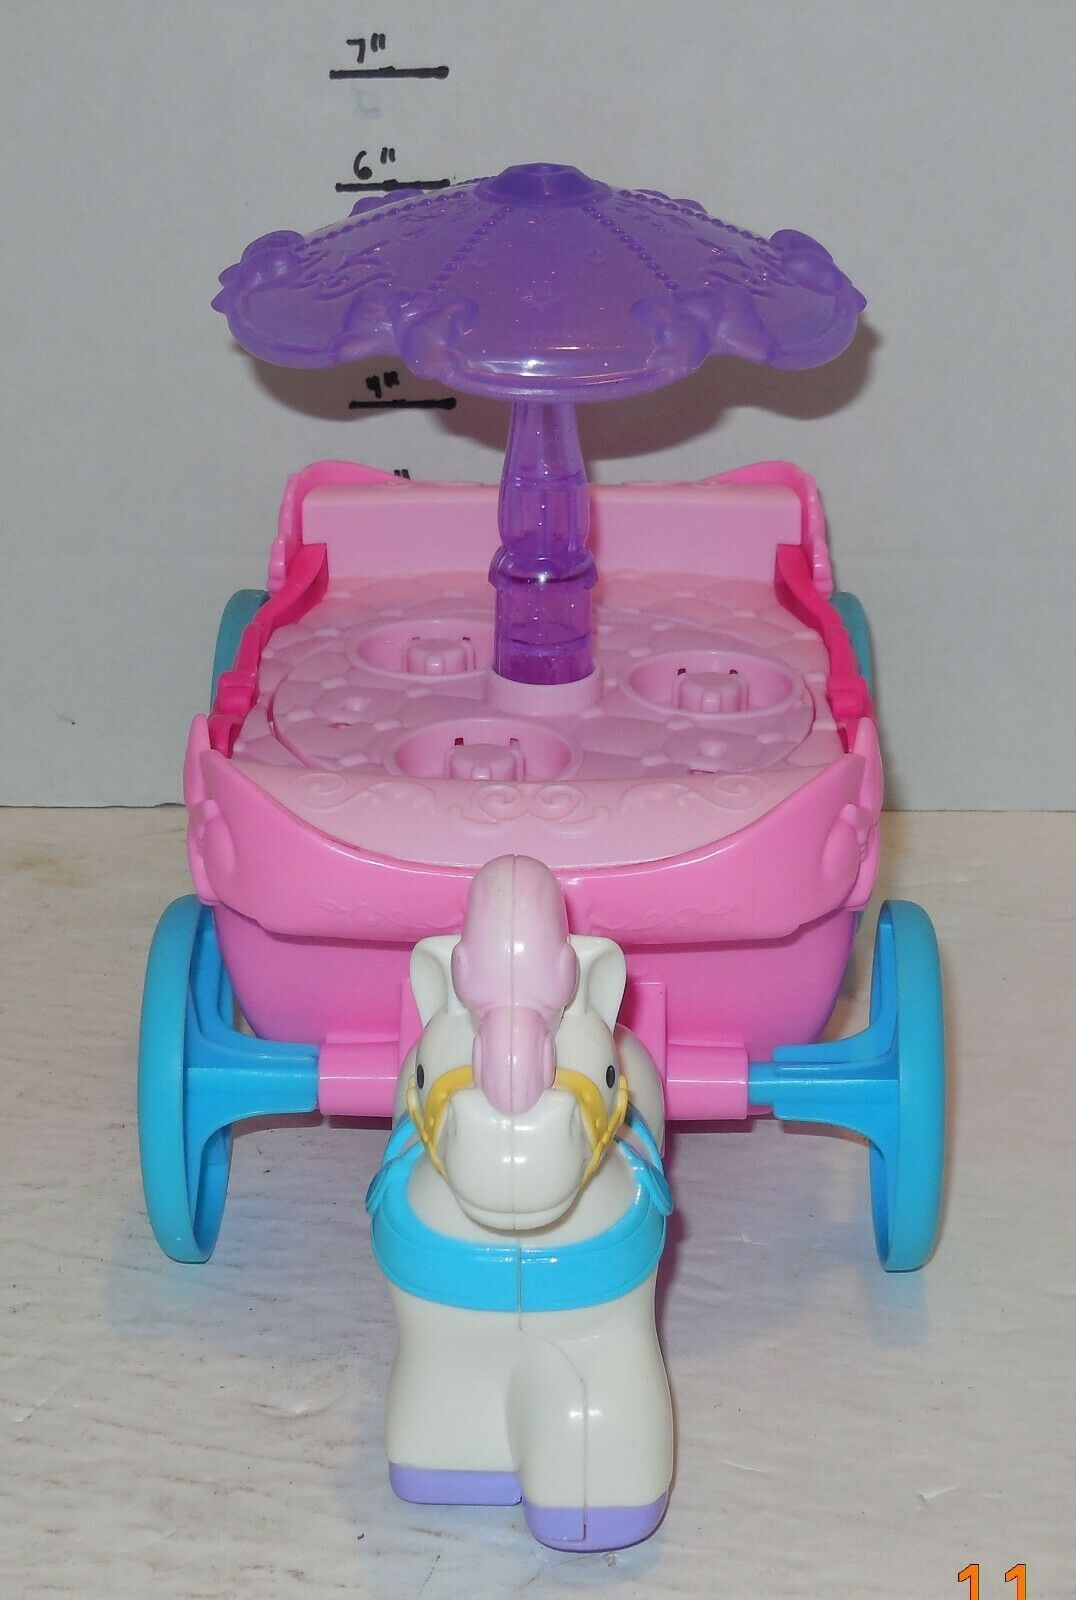 Fisher Price Disney Little People Pink Purple Princess Carriage Carousel Musical image 2